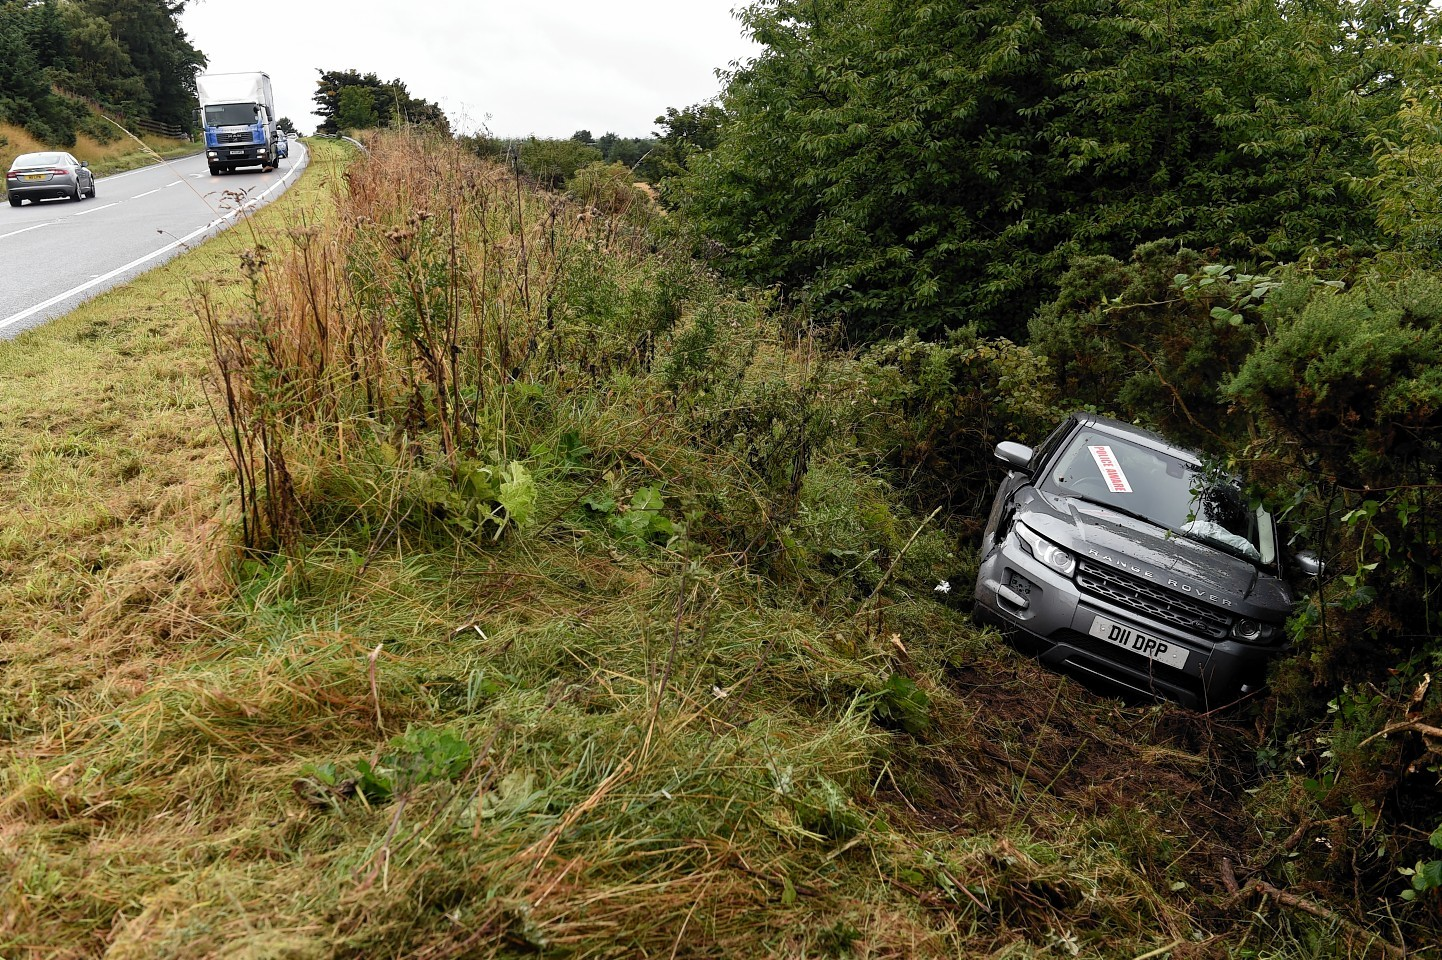 The Landrover ran down the side of the roadside embankment